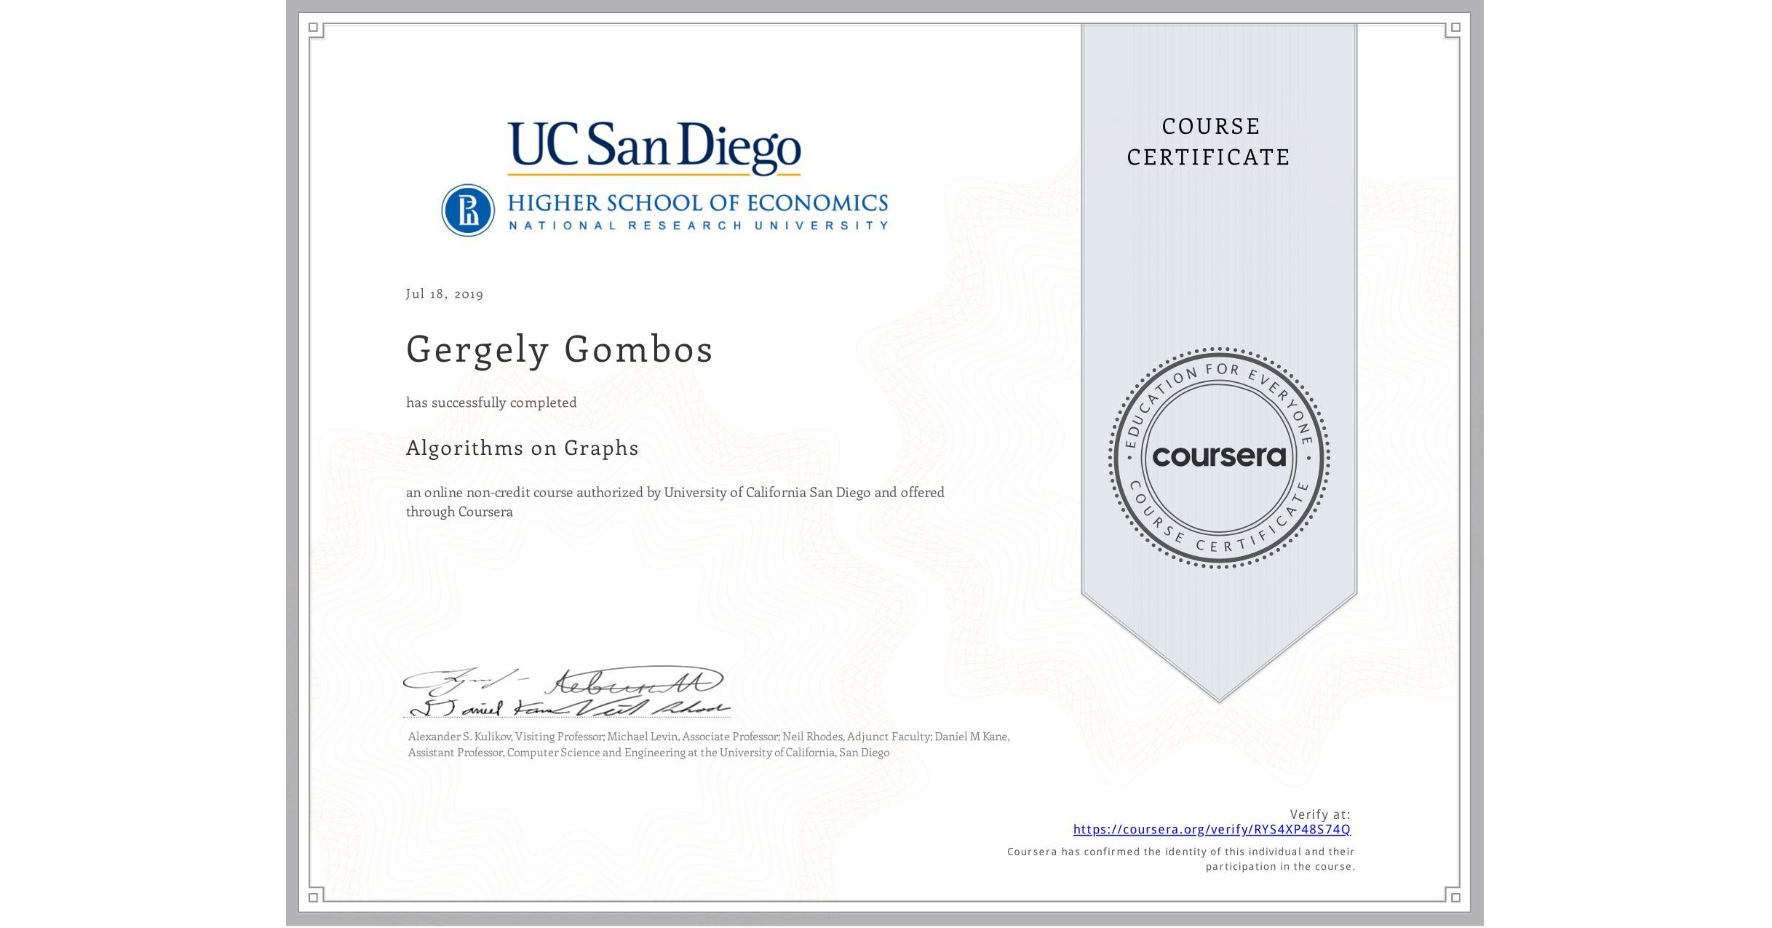 View certificate for Gergely Gombos, Algorithms on Graphs, an online non-credit course authorized by University of California San Diego & HSE University and offered through Coursera